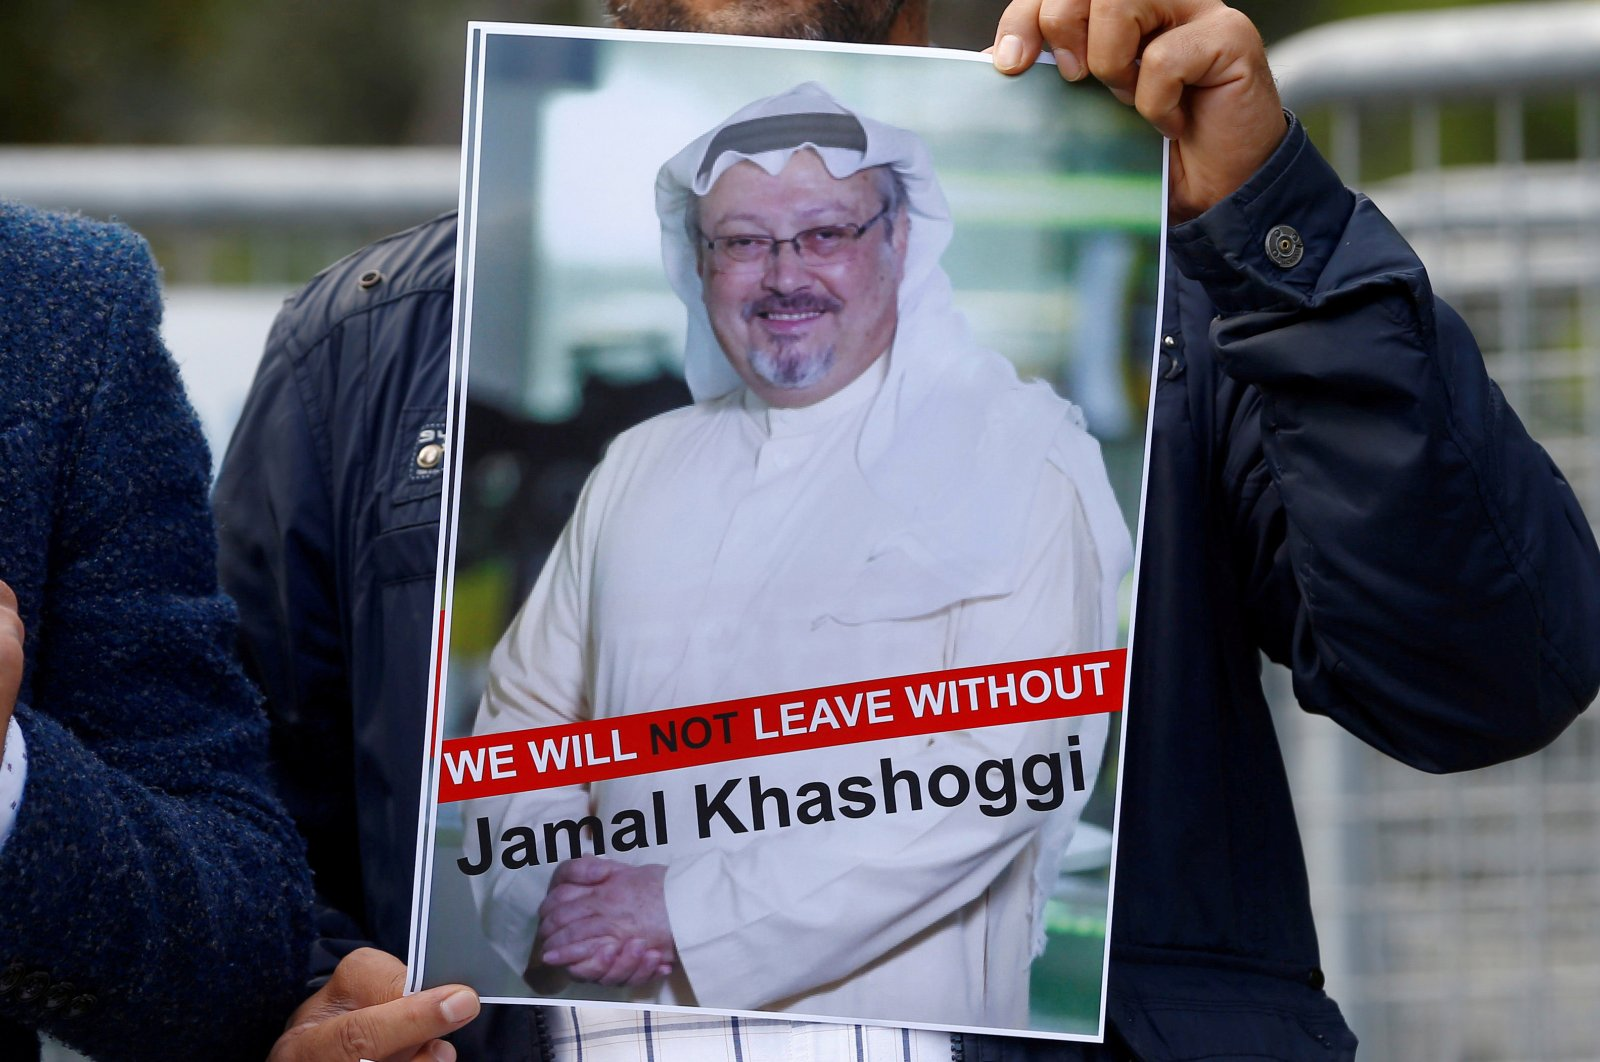 A demonstrator holds a picture of Saudi journalist Jamal Khashoggi during a protest in front of Saudi Arabia's consulate in Istanbul, Turkey, Oct. 5, 2018. (Reuters File Photo)